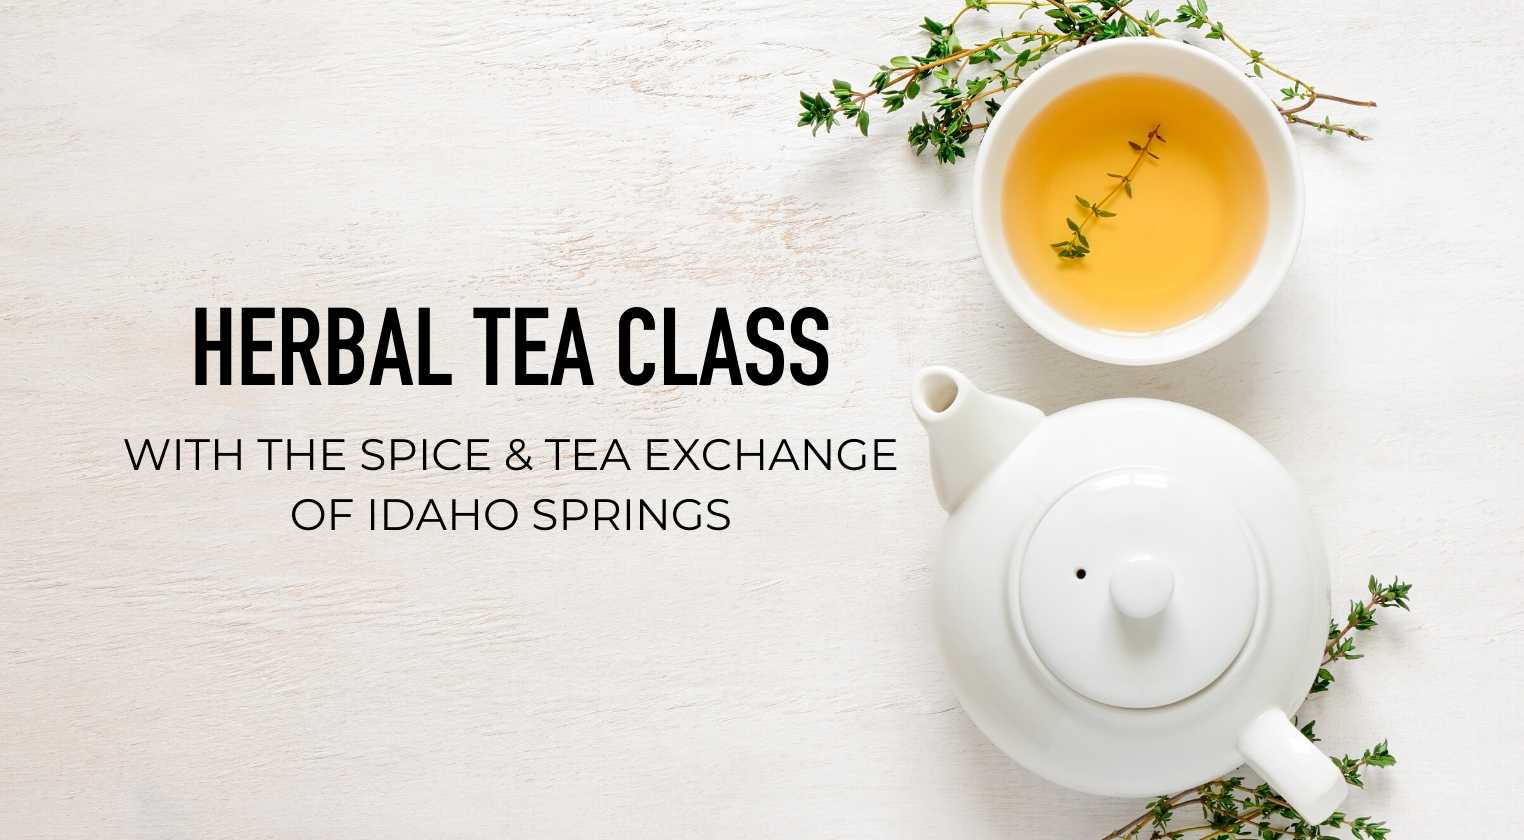 Herbal Tea Class with the Spice & Tea Exchange of Idaho Springs